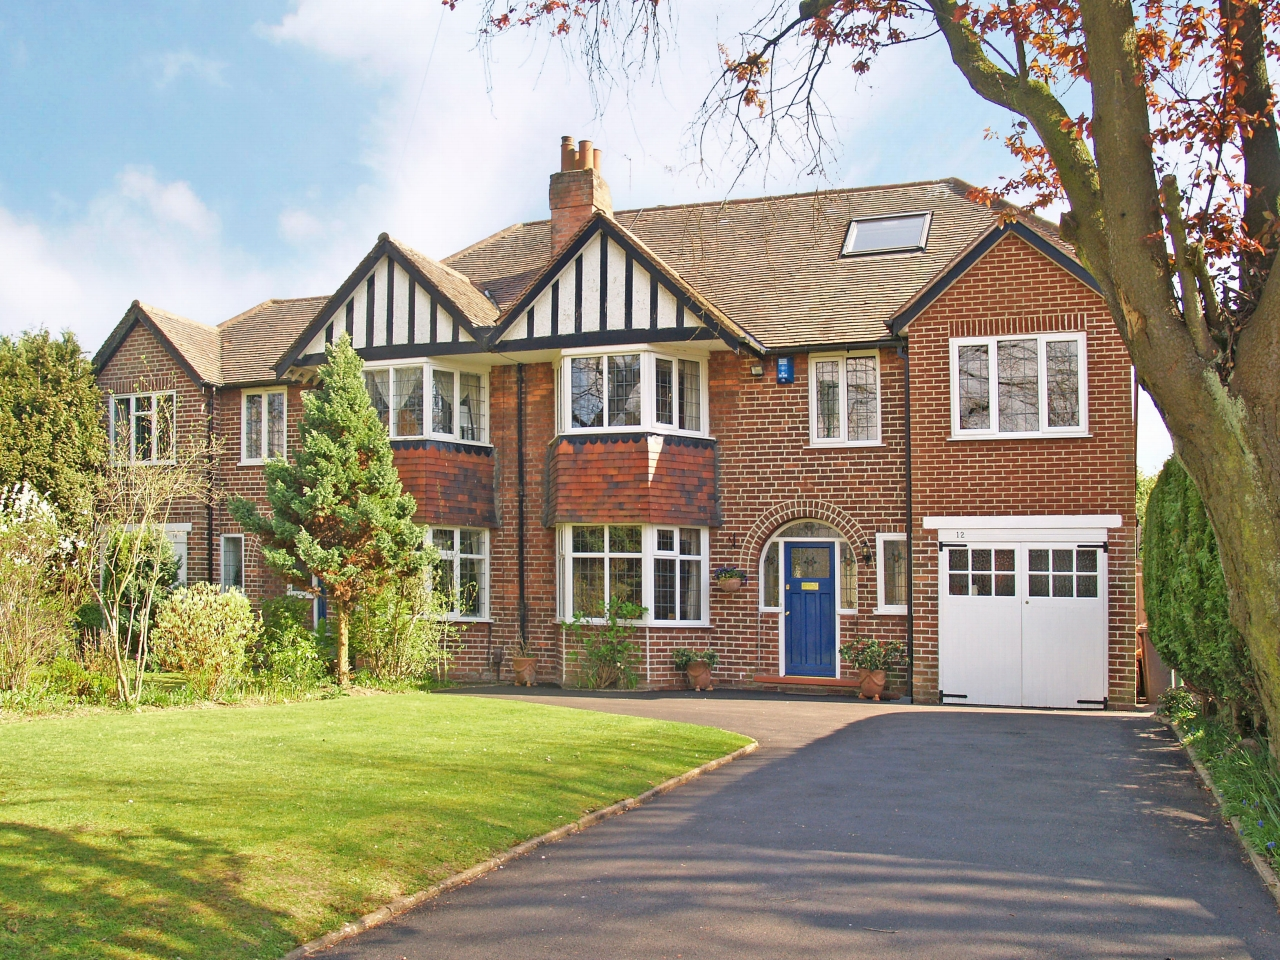 6 bedroom semi detached house SSTC in Solihull - photograph 1.